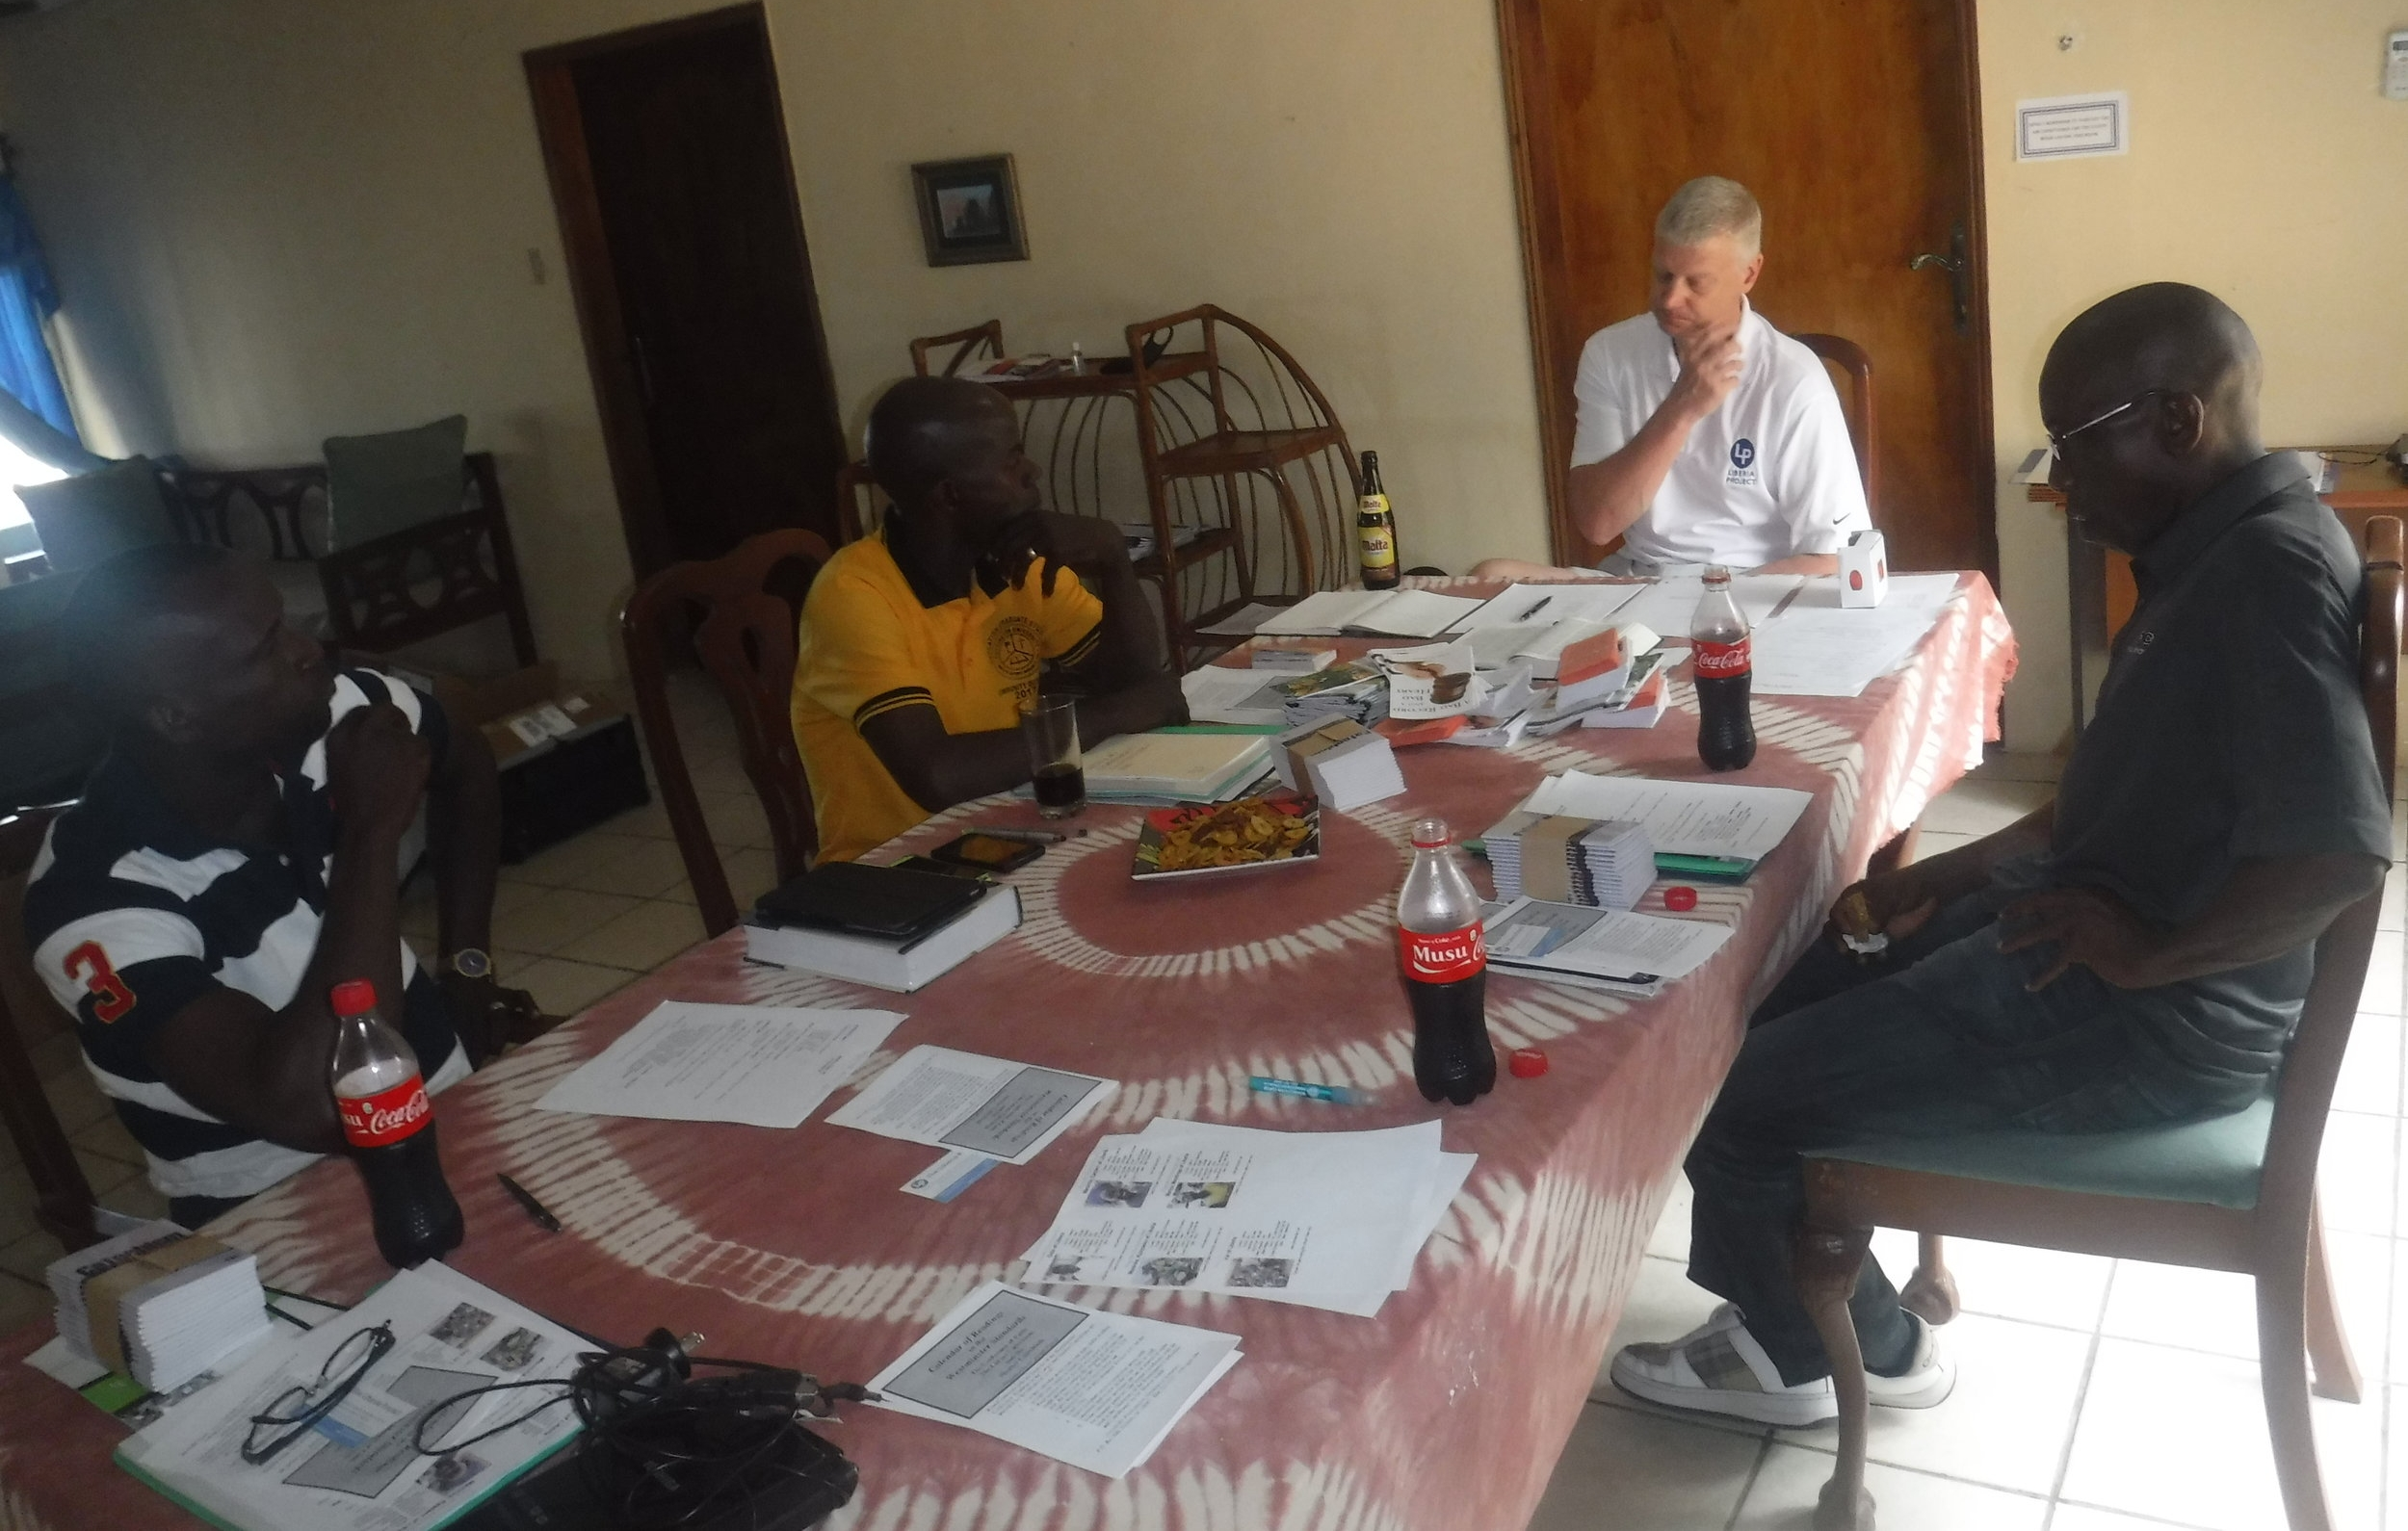 In April of 2017 Pastor Elijah Debah, Pastor William N'gufuan,Pastor Tim Worrell, and Pastor Sabato Kehdon met to discuss the establishment of a Presbytery.  Mr. Jonathan Bettie was present and took the picture.